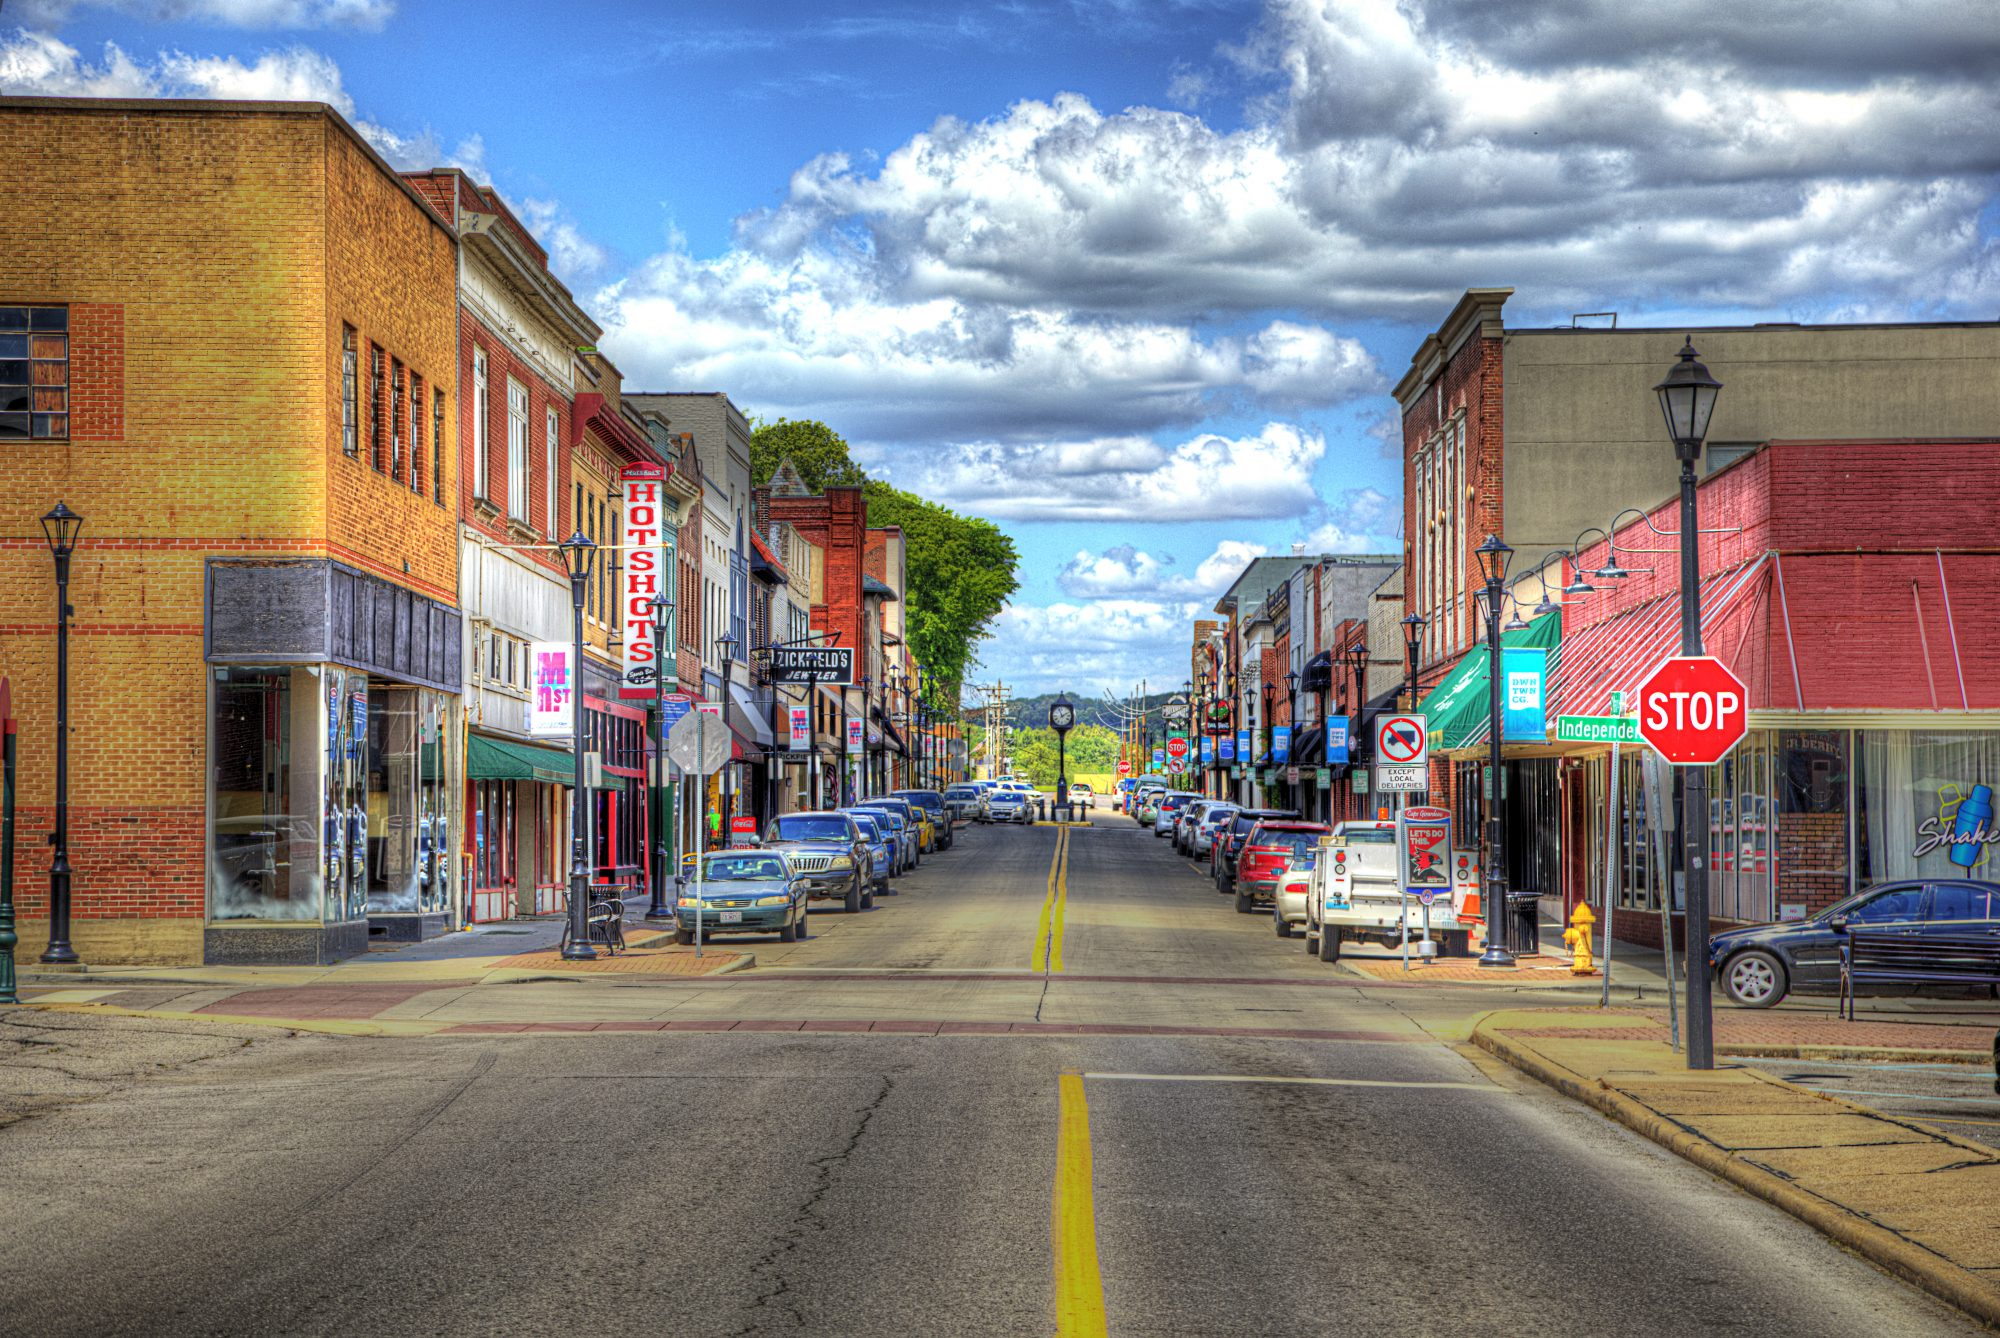 Main Street Looking Cape Girardeau Looking North